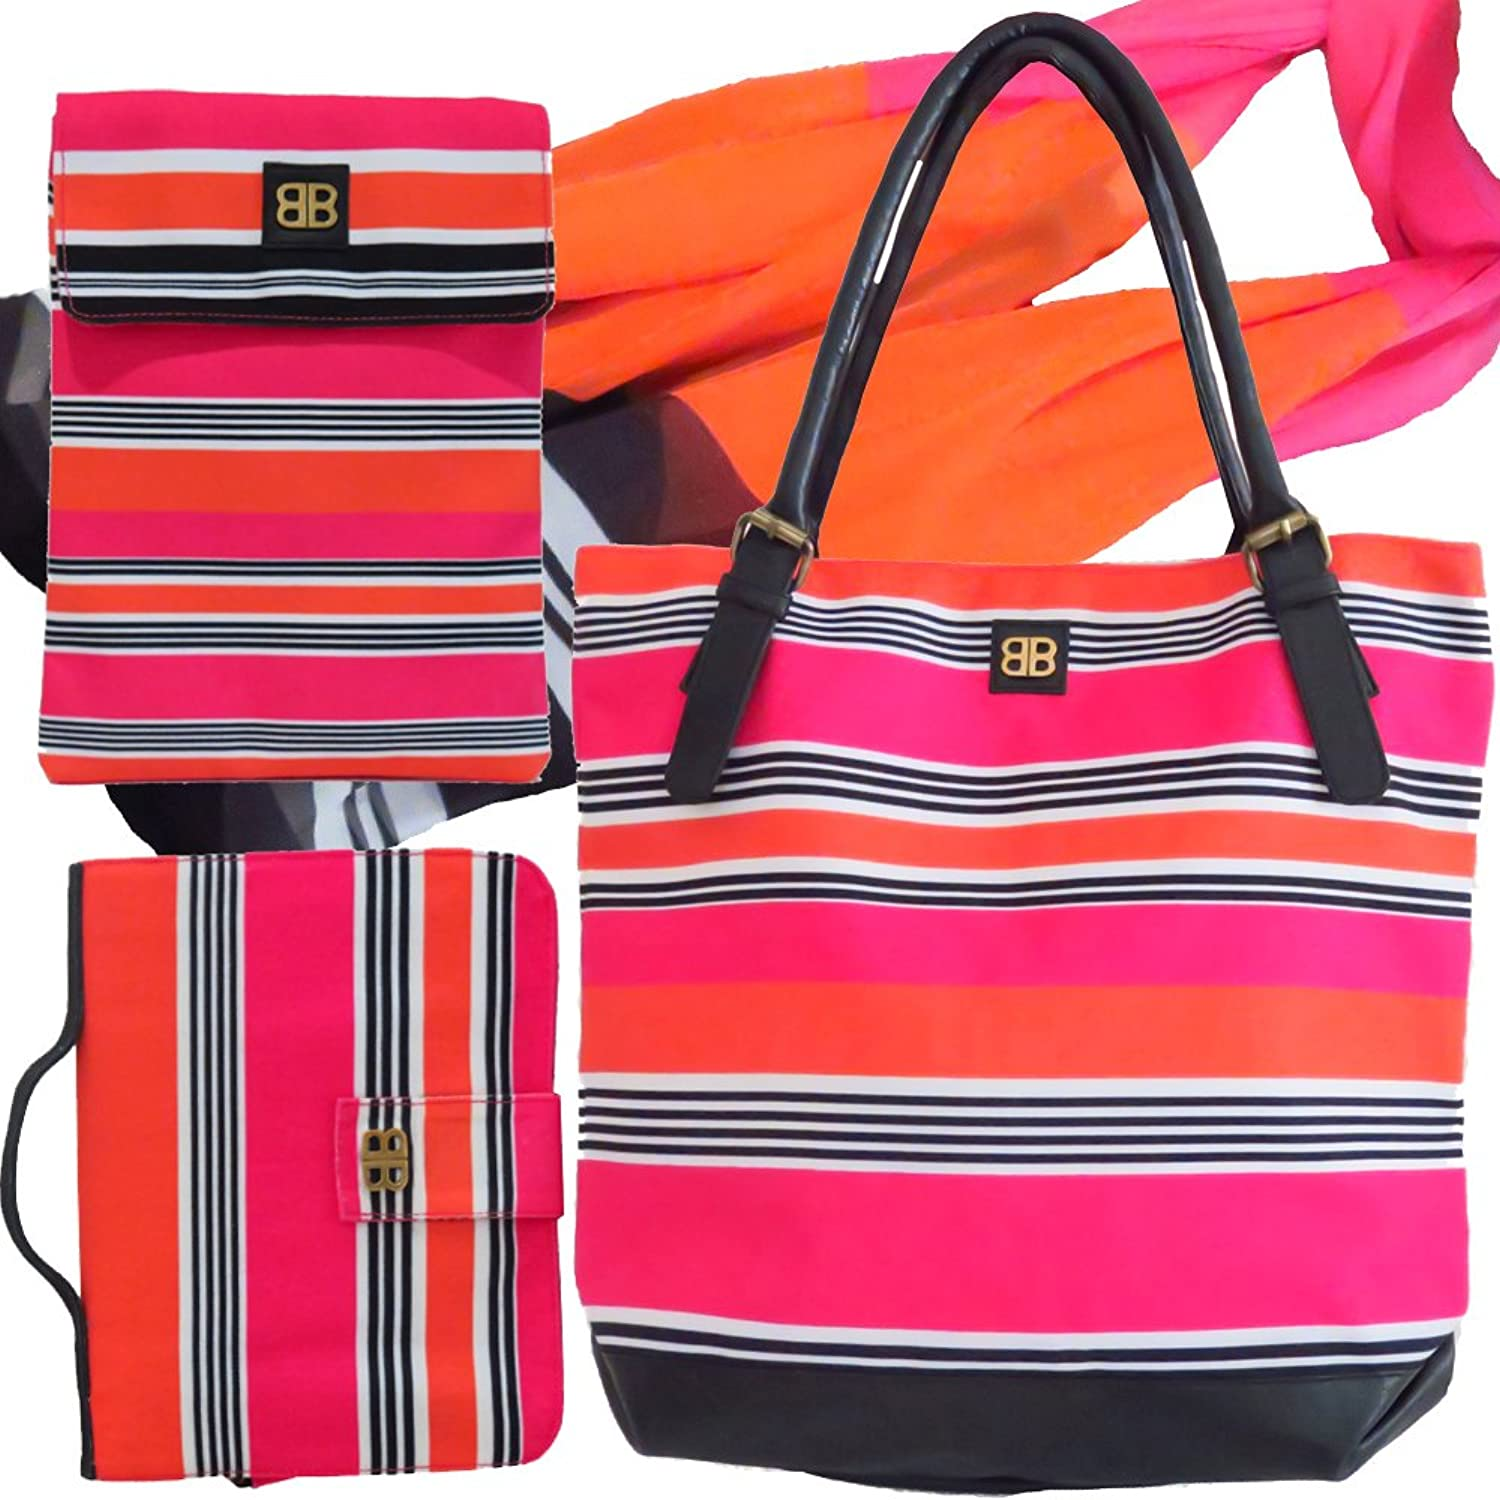 Bagabook Candy Stripe Set Tote Bag Scarf Executive Book Bible Cover Ipad Tablet Pouch